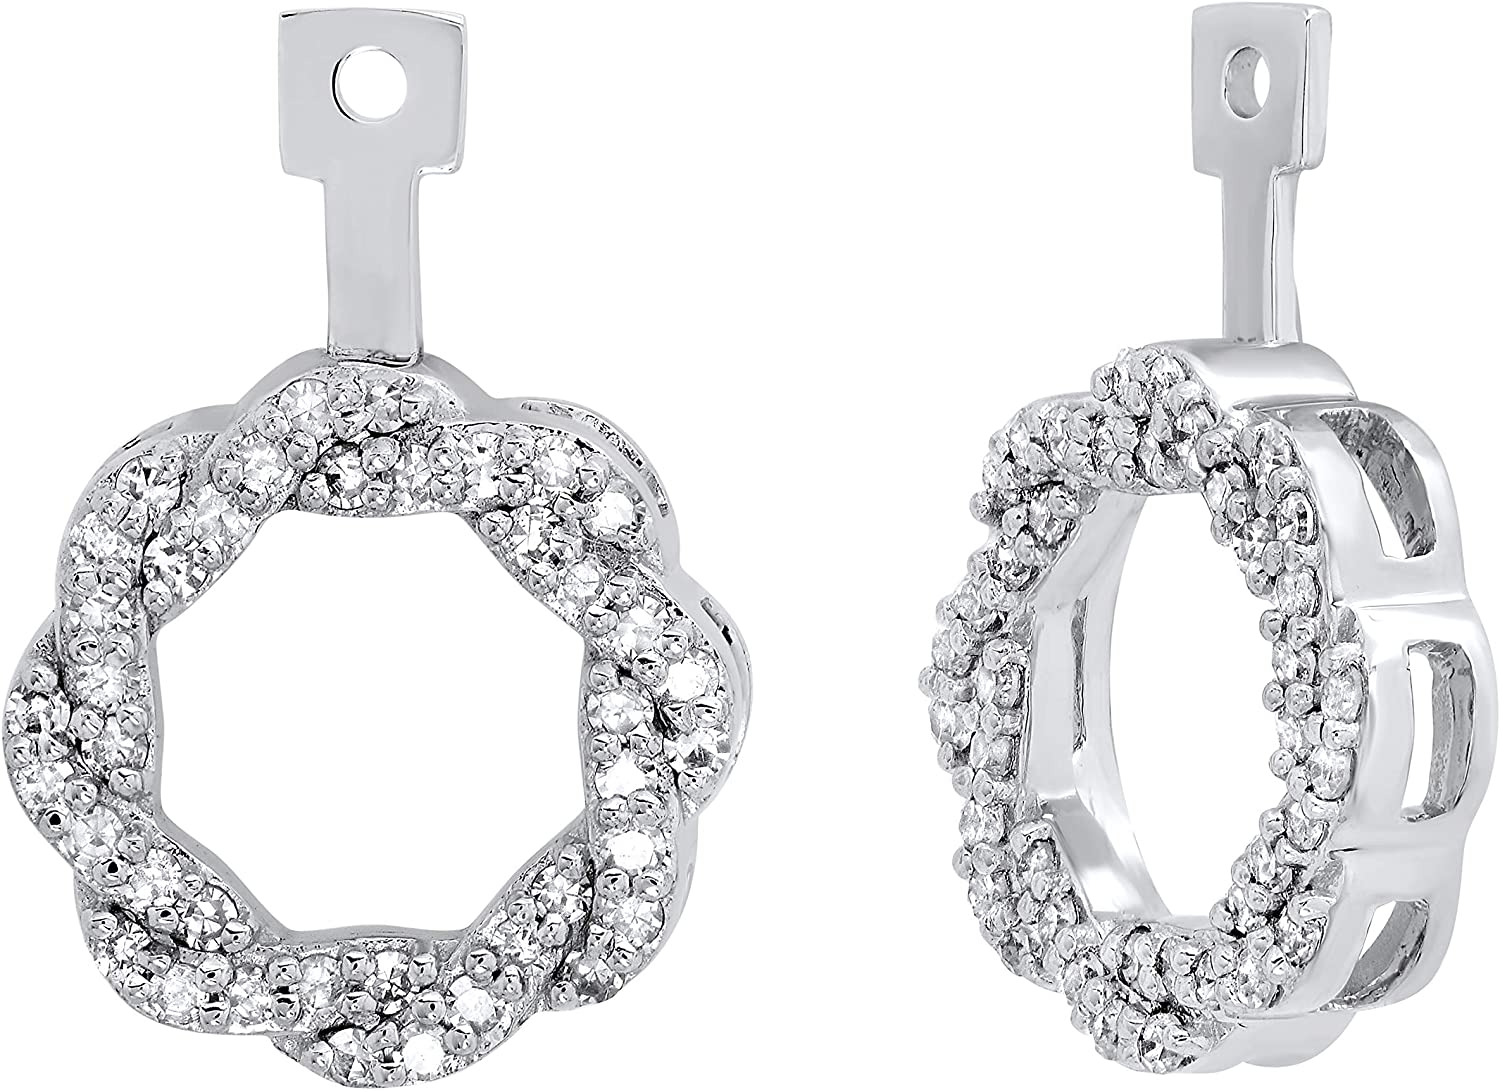 Dazzlingrock Collection 0.45 Carat (Ctw) Round White Diamond Ladies Swirl Earring Jackets 1/2 CT, Available in 10K/14K/18K Gold